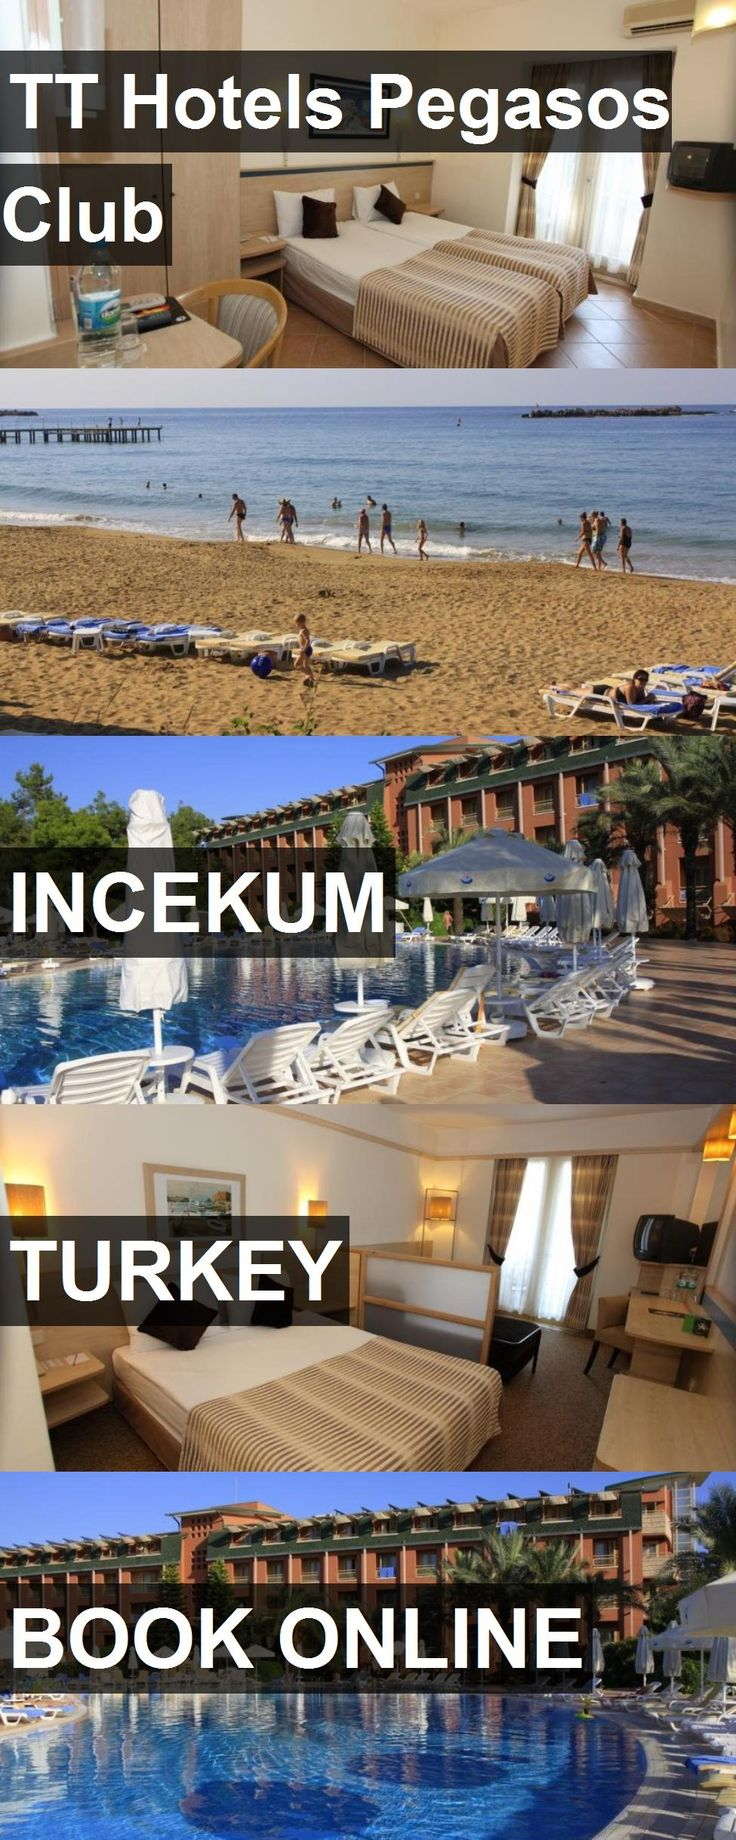 Hotel TT Hotels Pegasos Club in Incekum, Turkey. For more information, photos, reviews and best prices please follow the link. #Turkey #Incekum #TTHotelsPegasosClub #hotel #travel #vacation